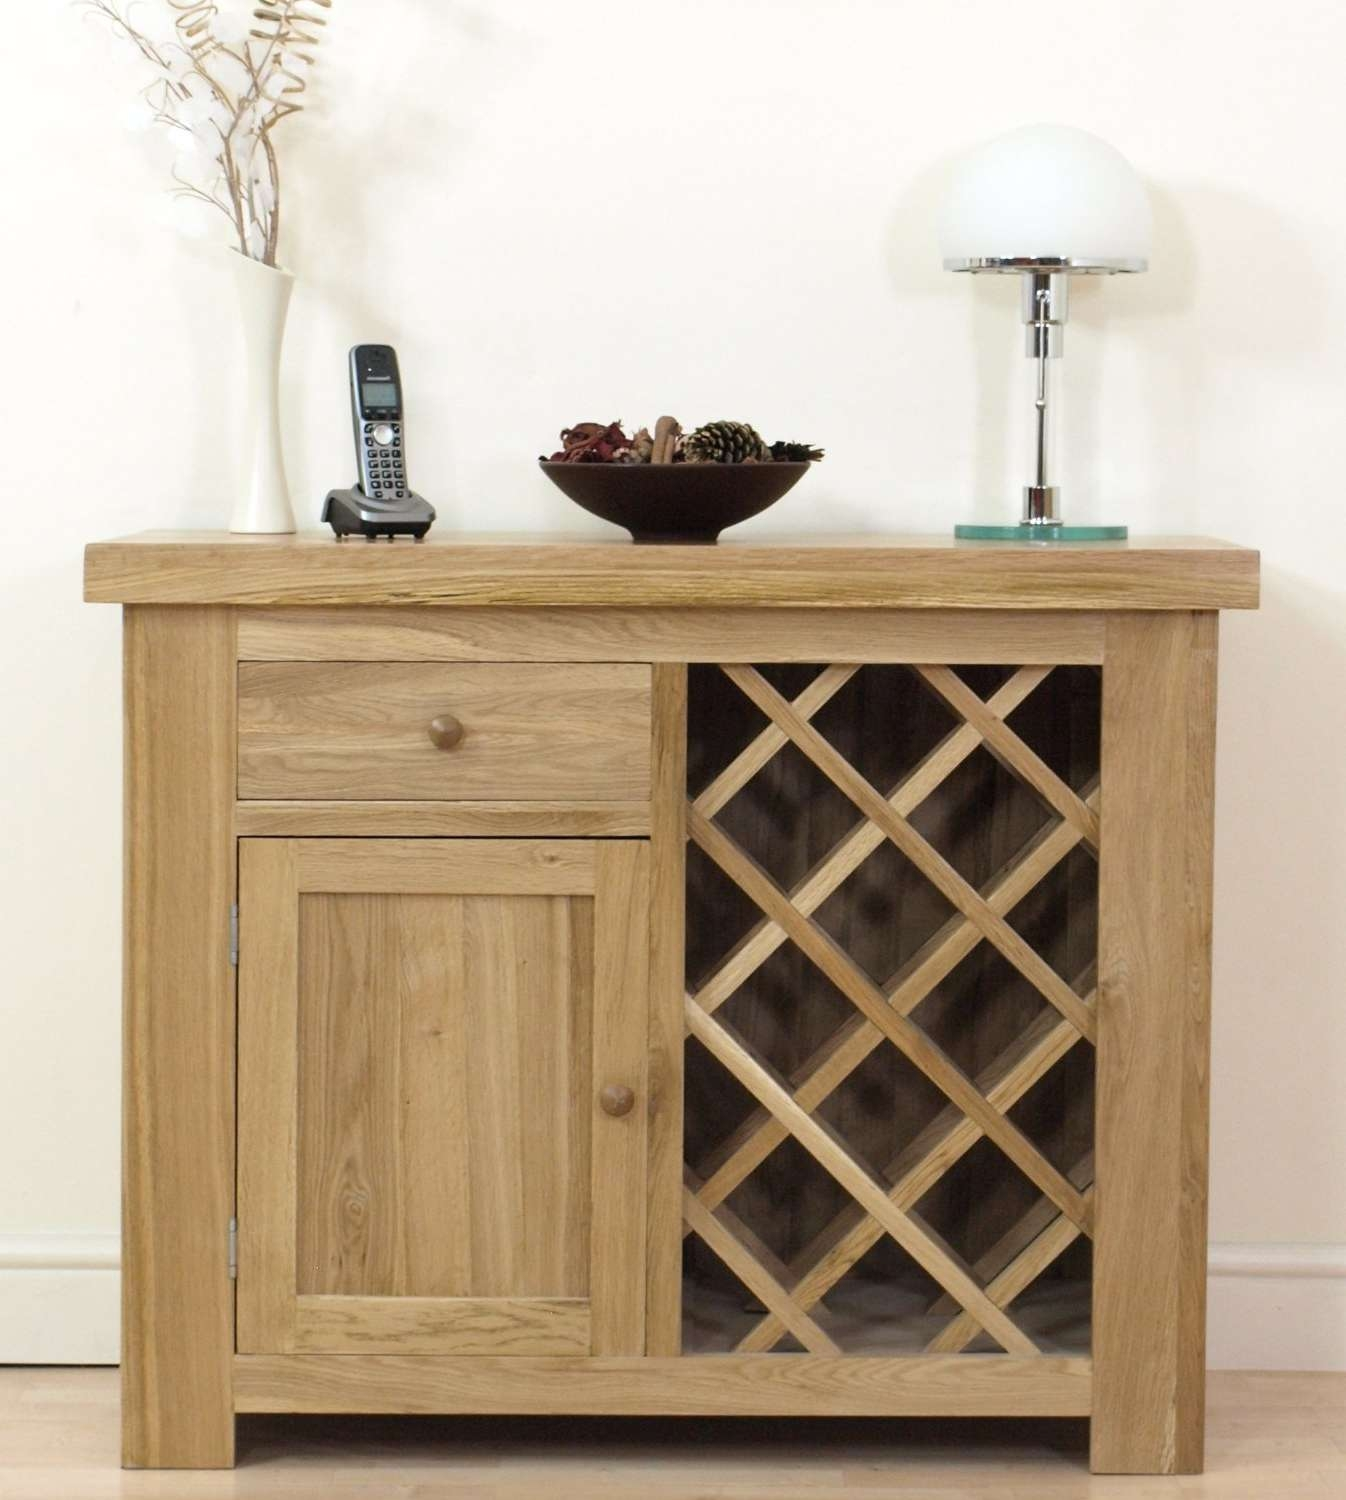 Oak Sideboard With Wine Rack | Home Design Ideas Intended For Sideboards With Wine Rack (Gallery 5 of 20)